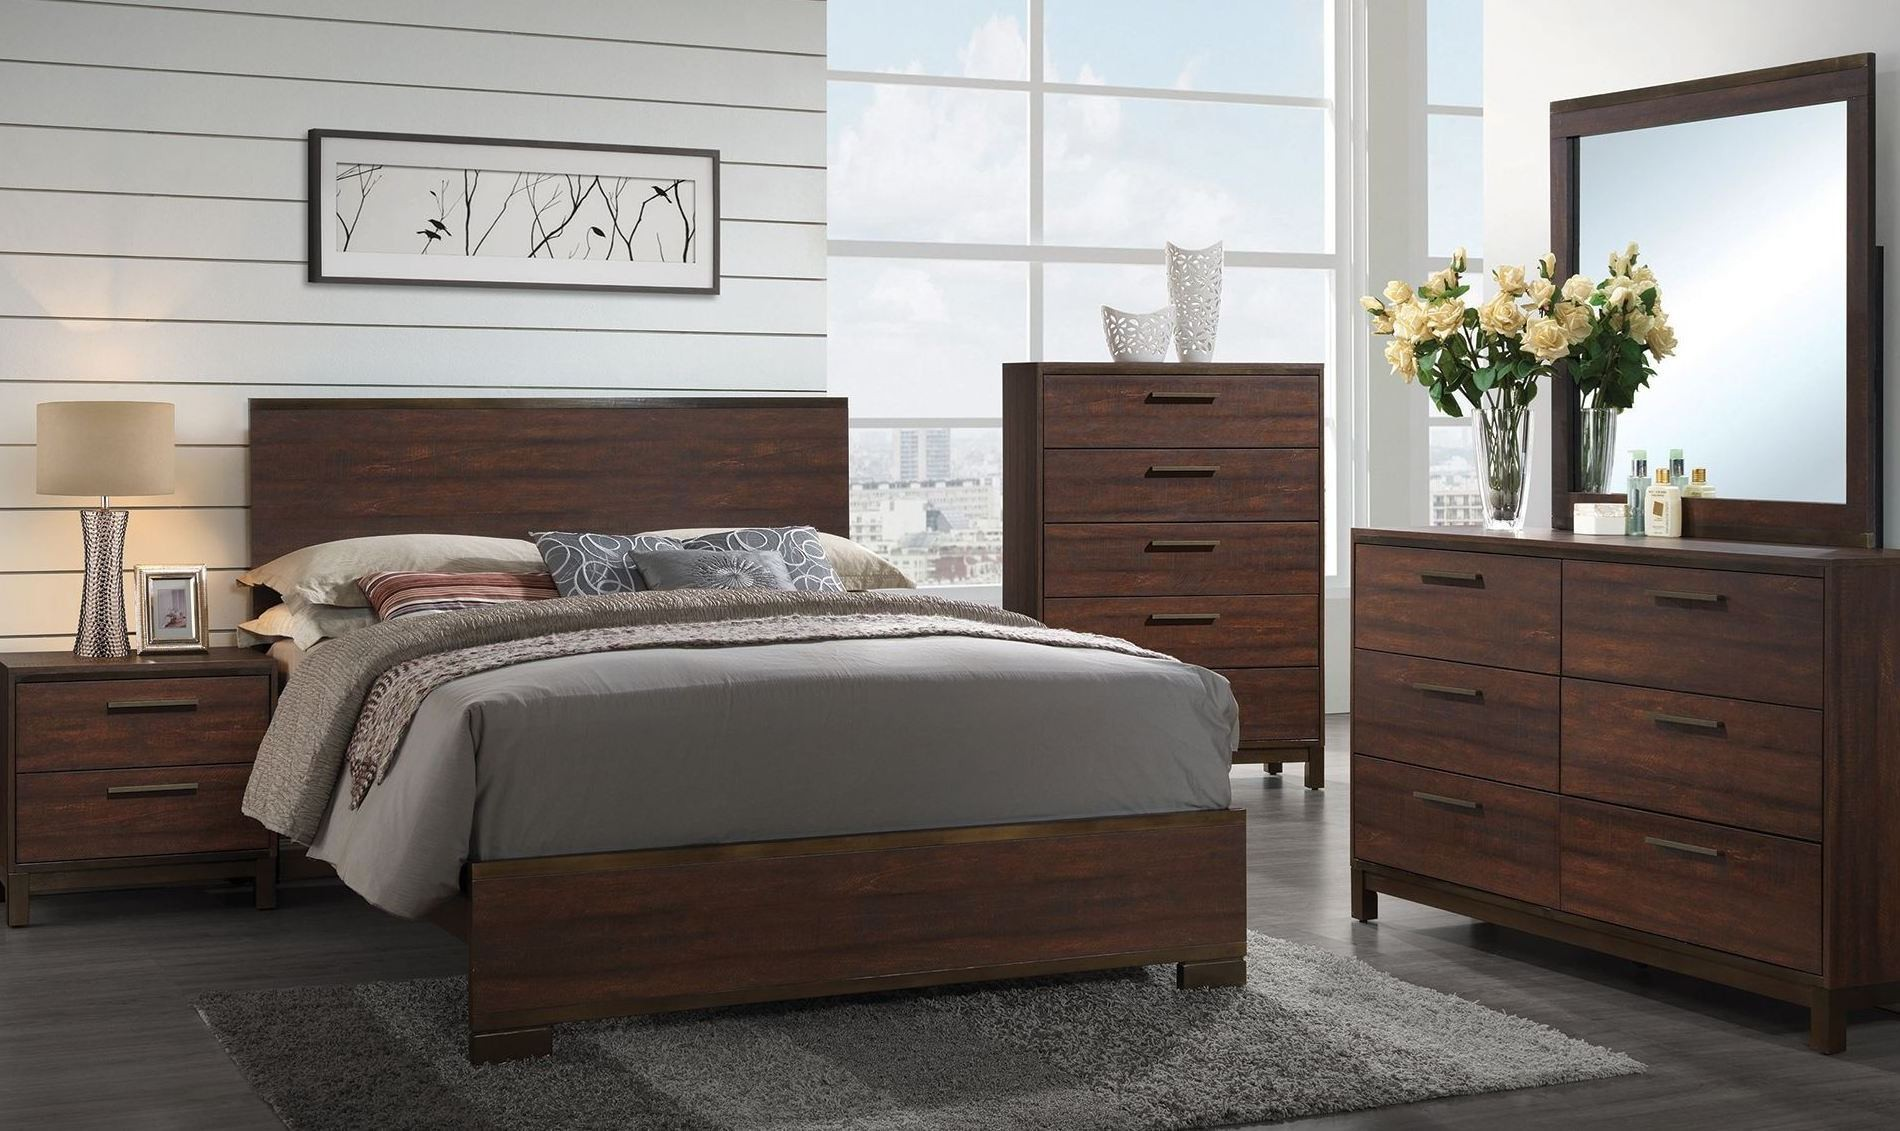 edmonton rustic tobacco platform bedroom set from coaster coleman furniture. Black Bedroom Furniture Sets. Home Design Ideas